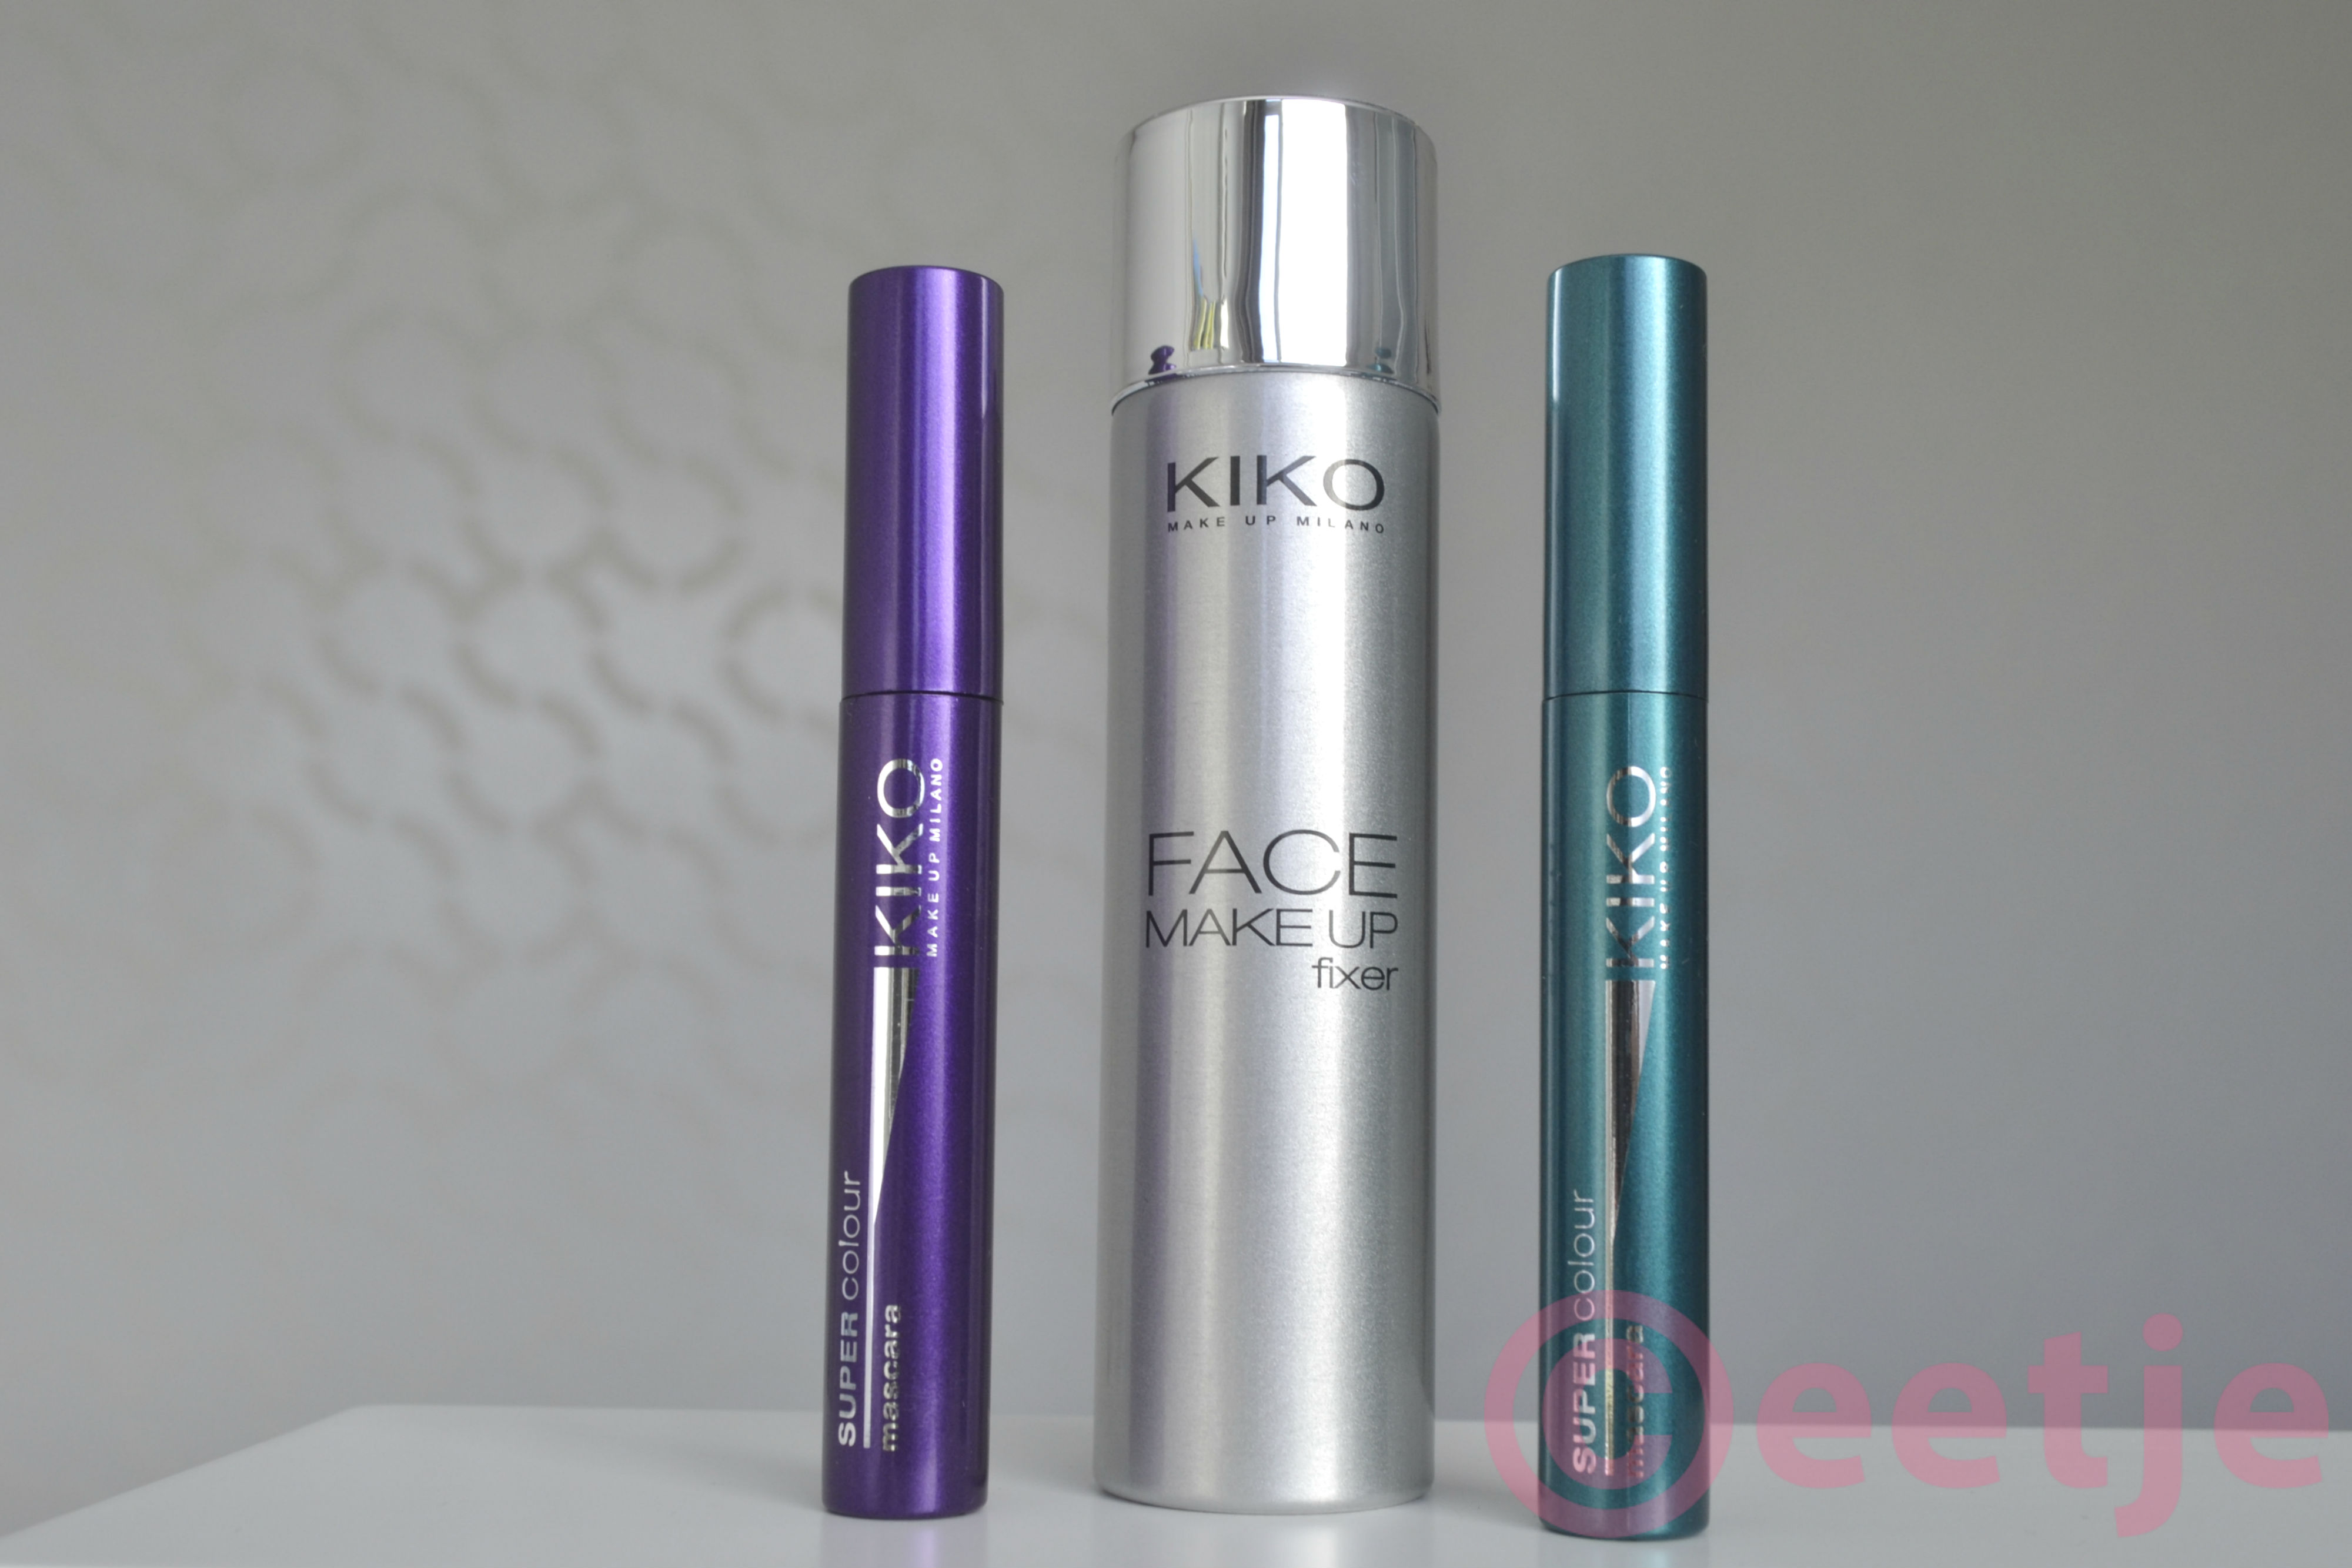 Kiko make up fixer setter